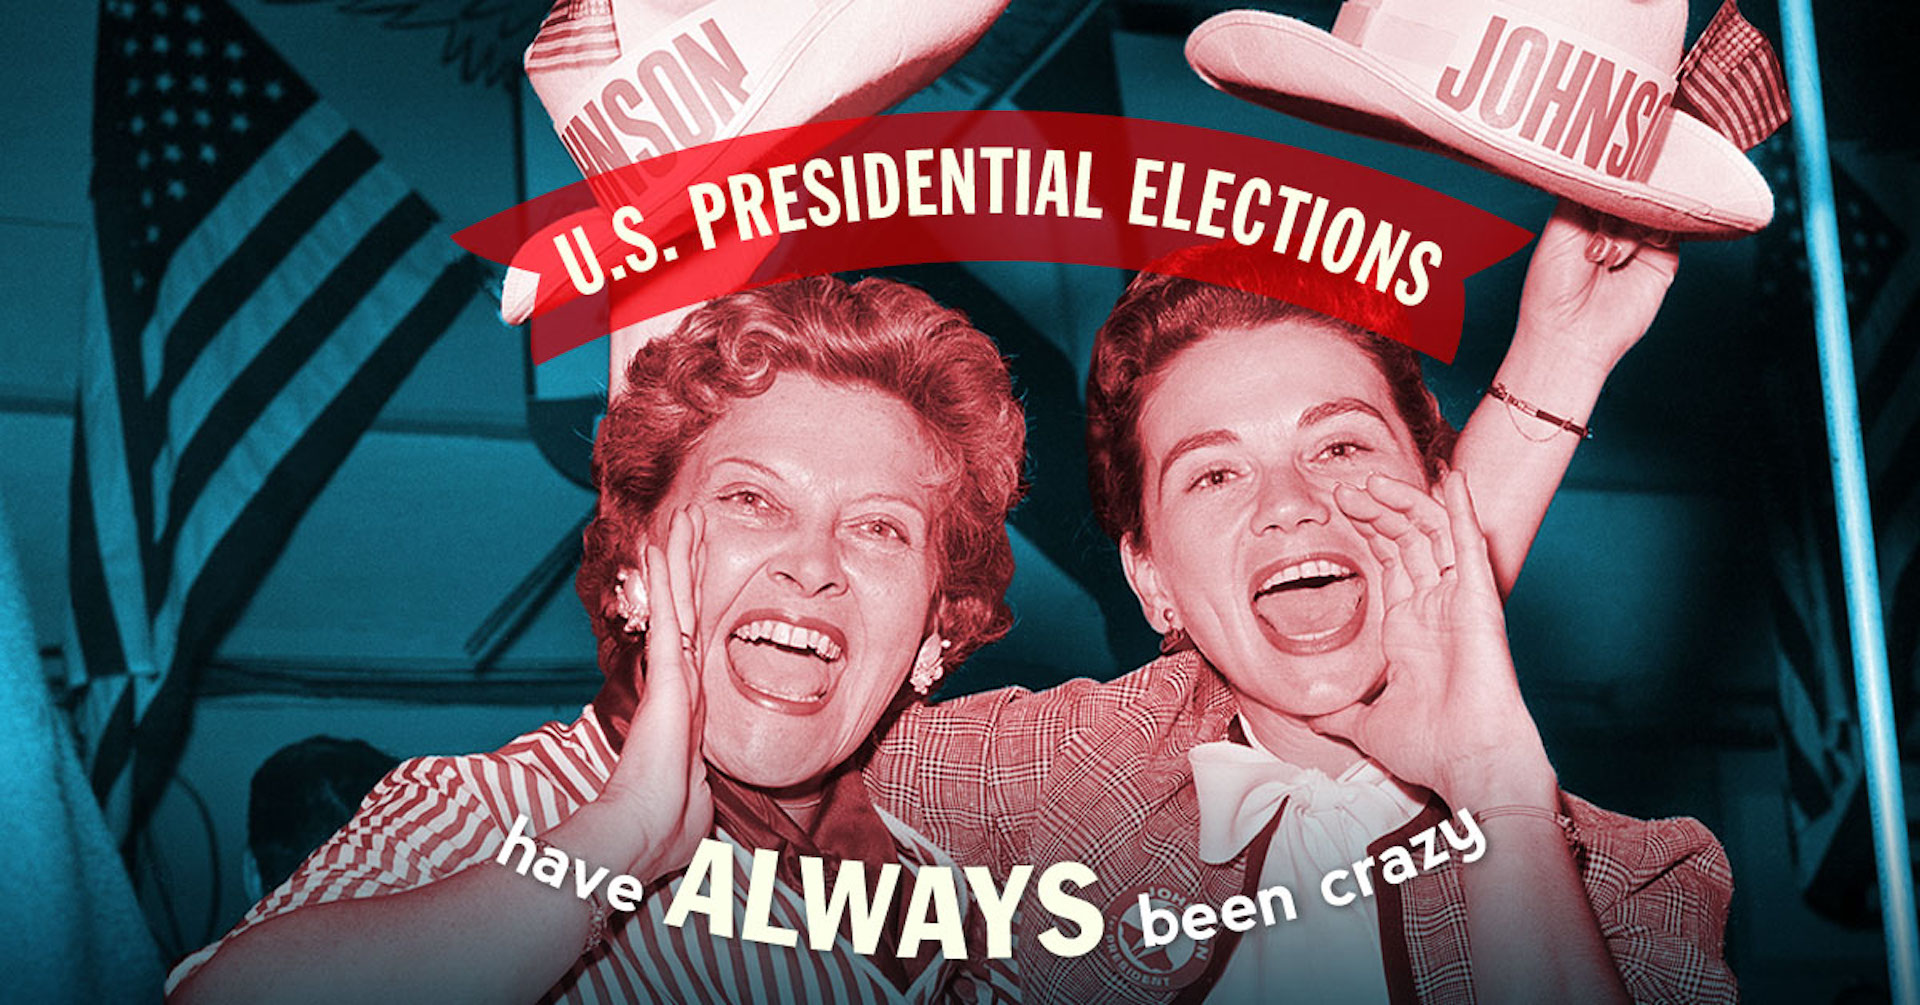 U.S. Presidential Elections Have Always Been Crazy